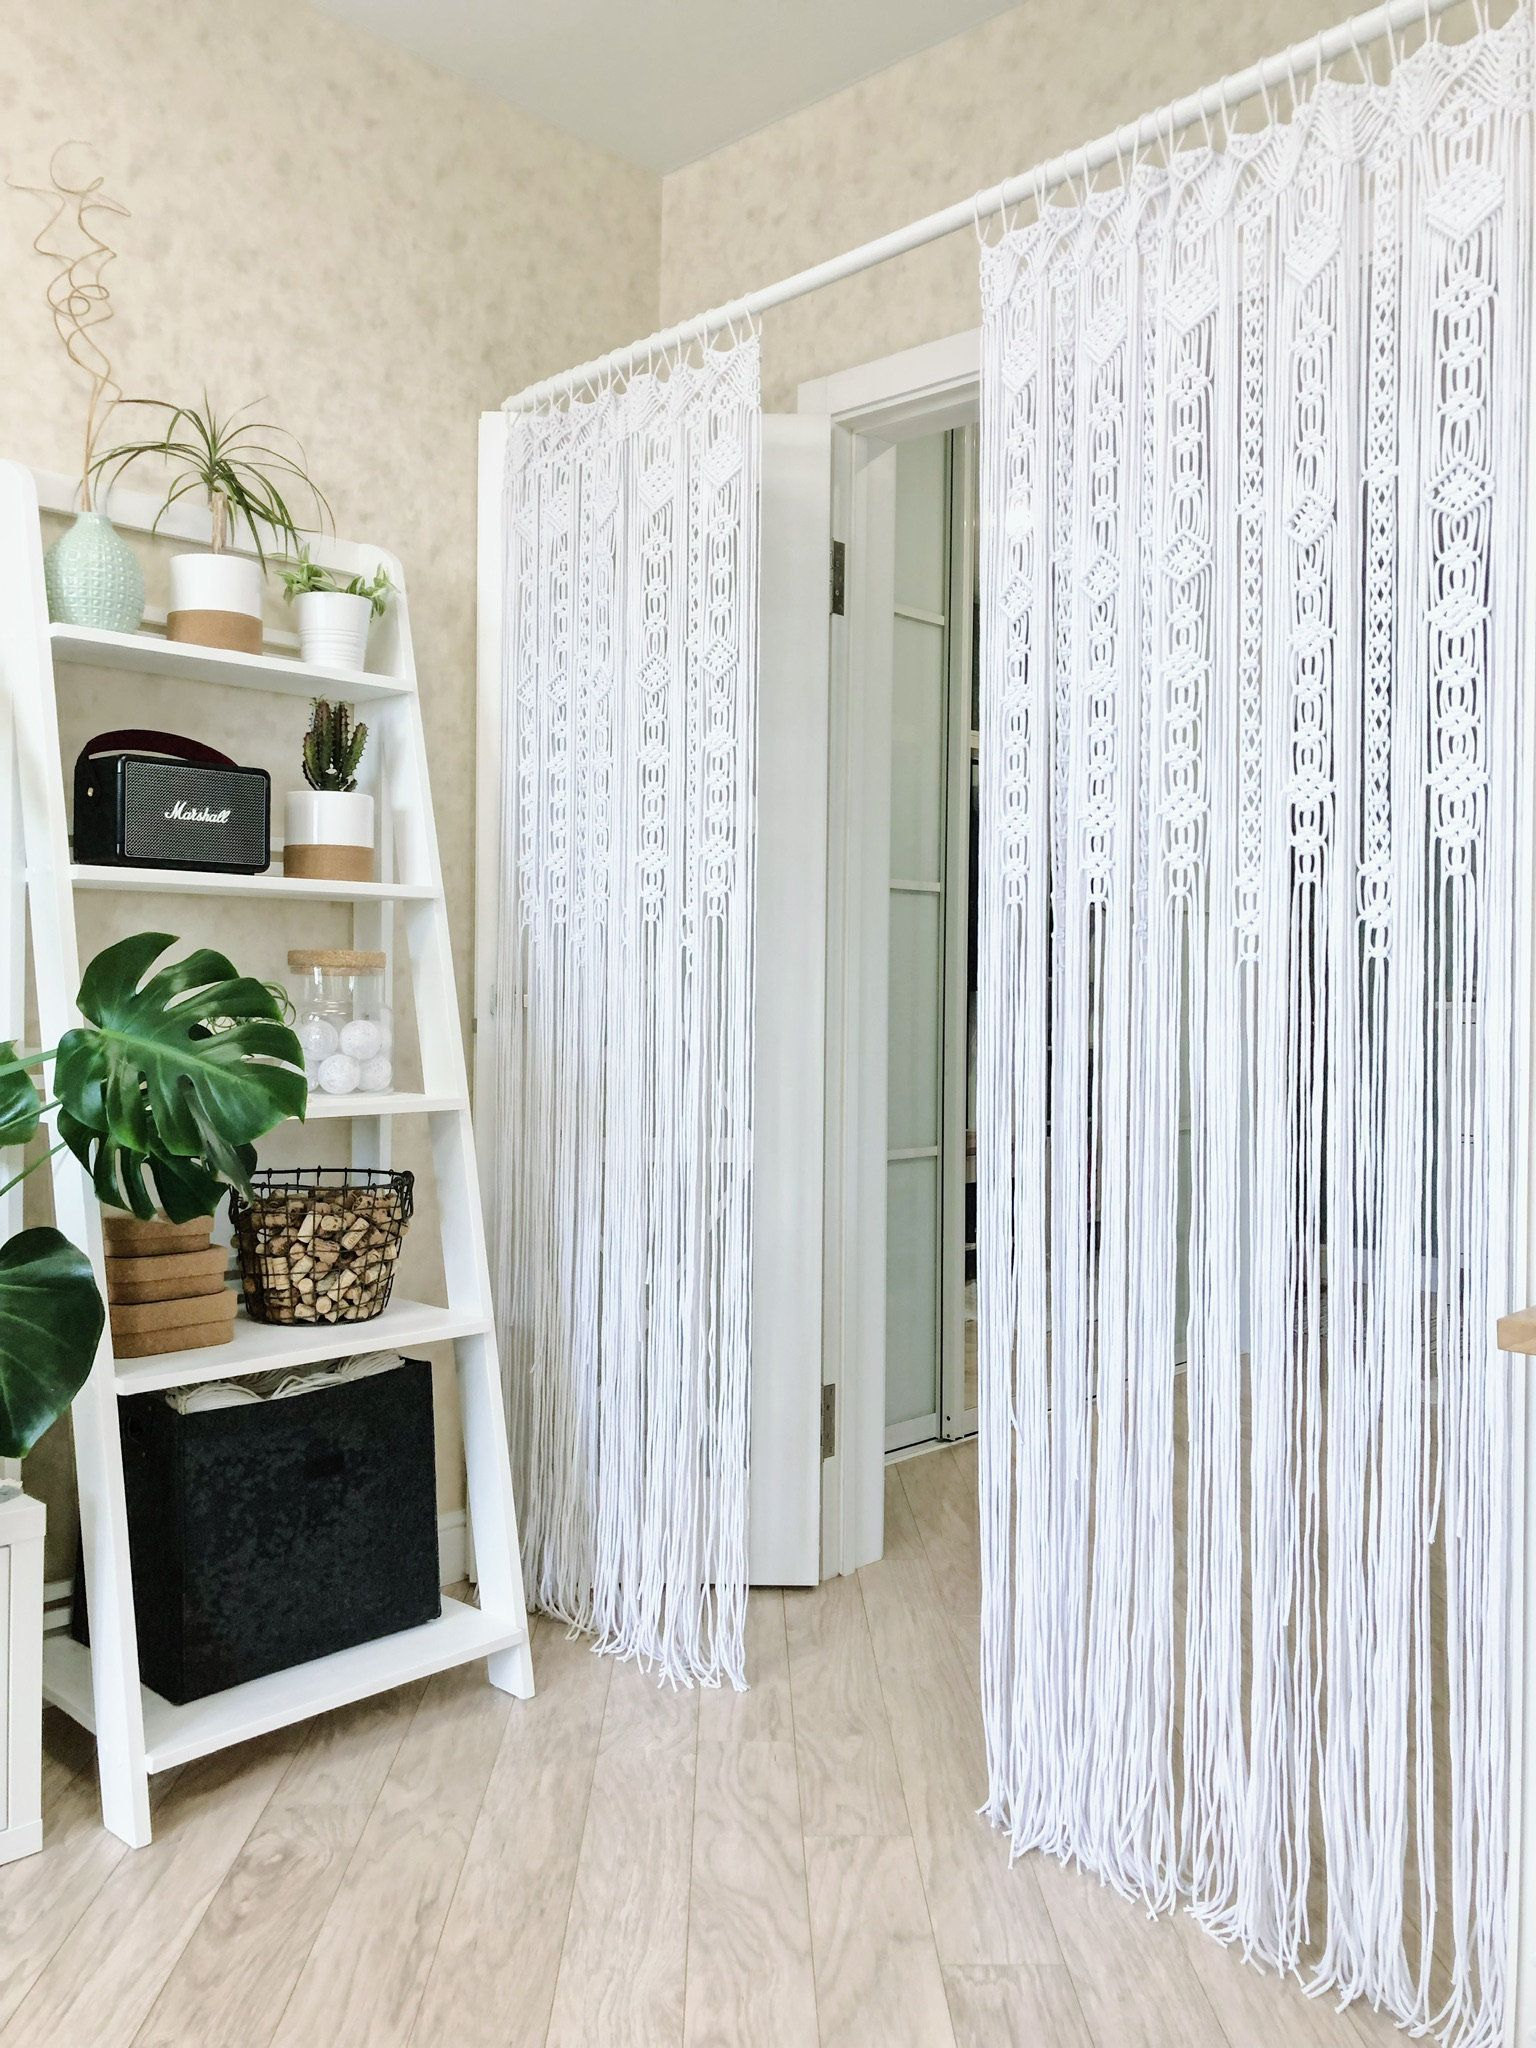 Large Macrame Door Curtains Of 2 Or 1 Panels Crocheted Entry Etsy Macrame Door Curtain Door Curtains Curtains Living Room